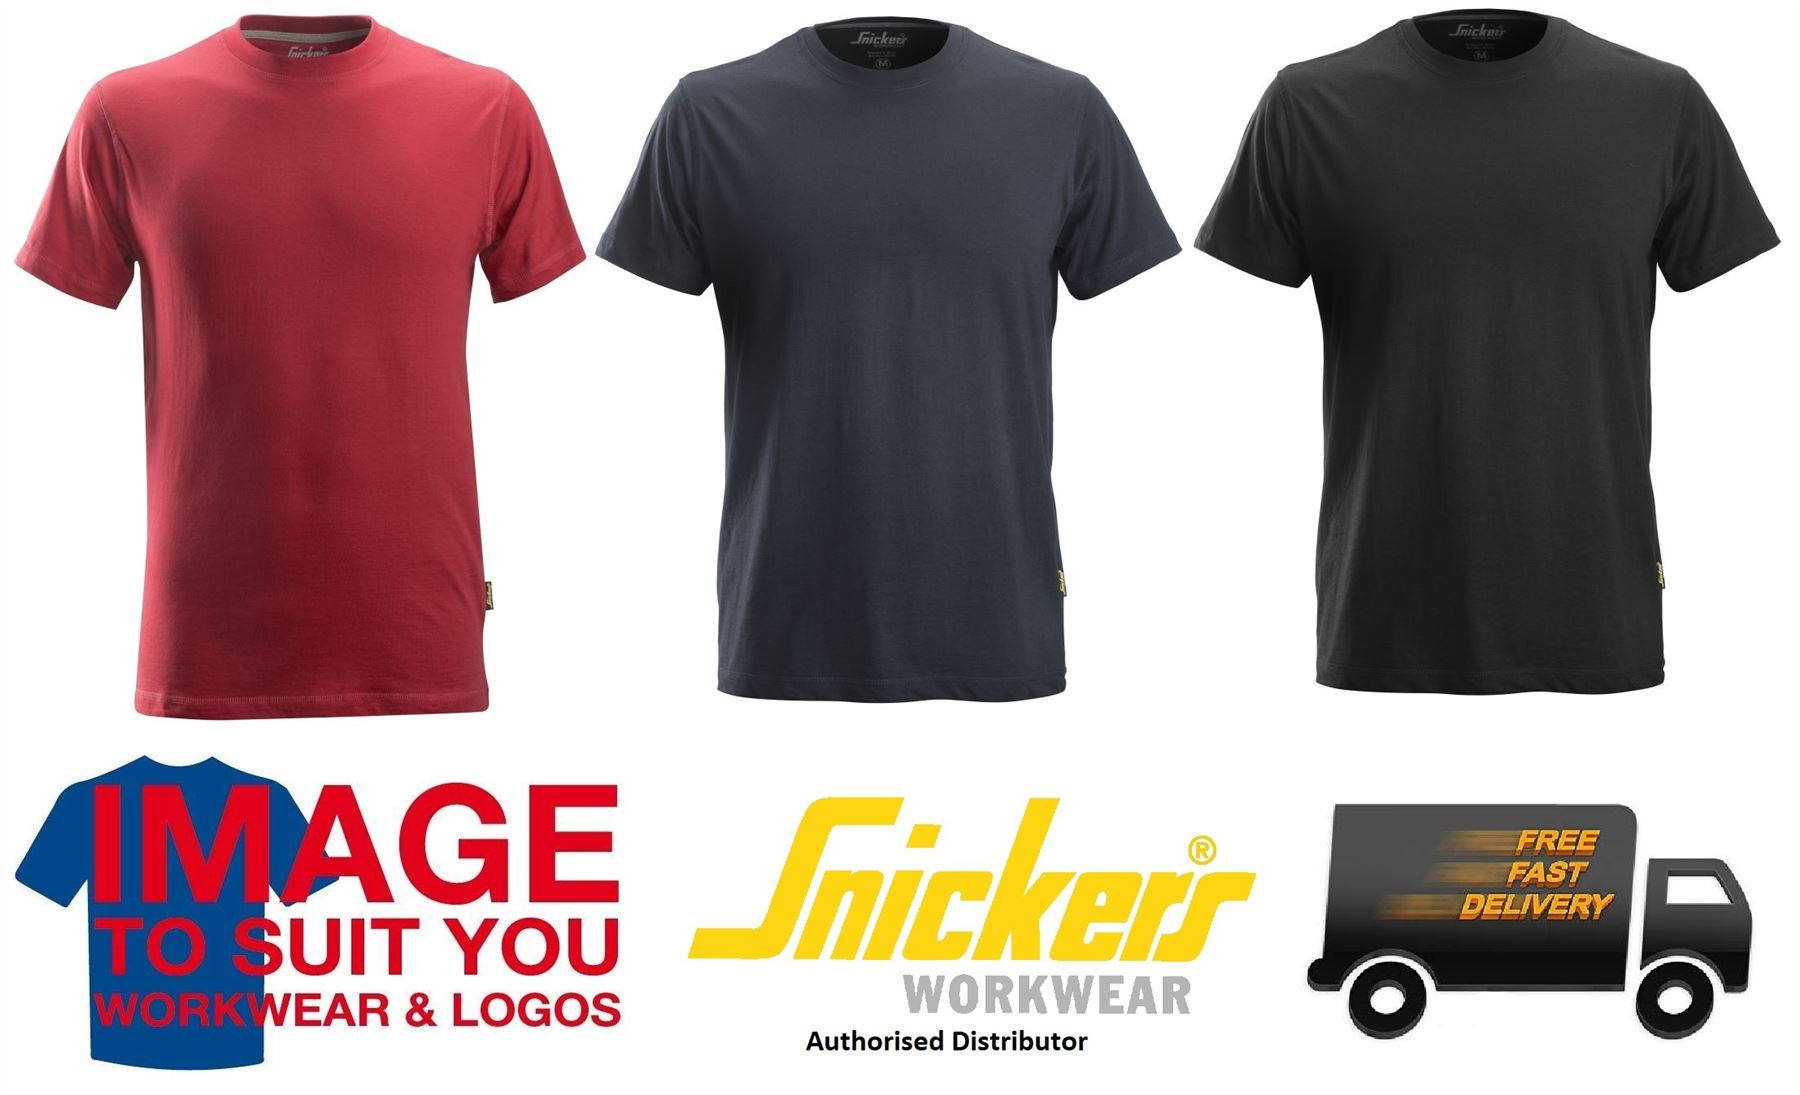 Snickers All Round Work T-Shirt 2518 Crew Neck Cotton T-shirt